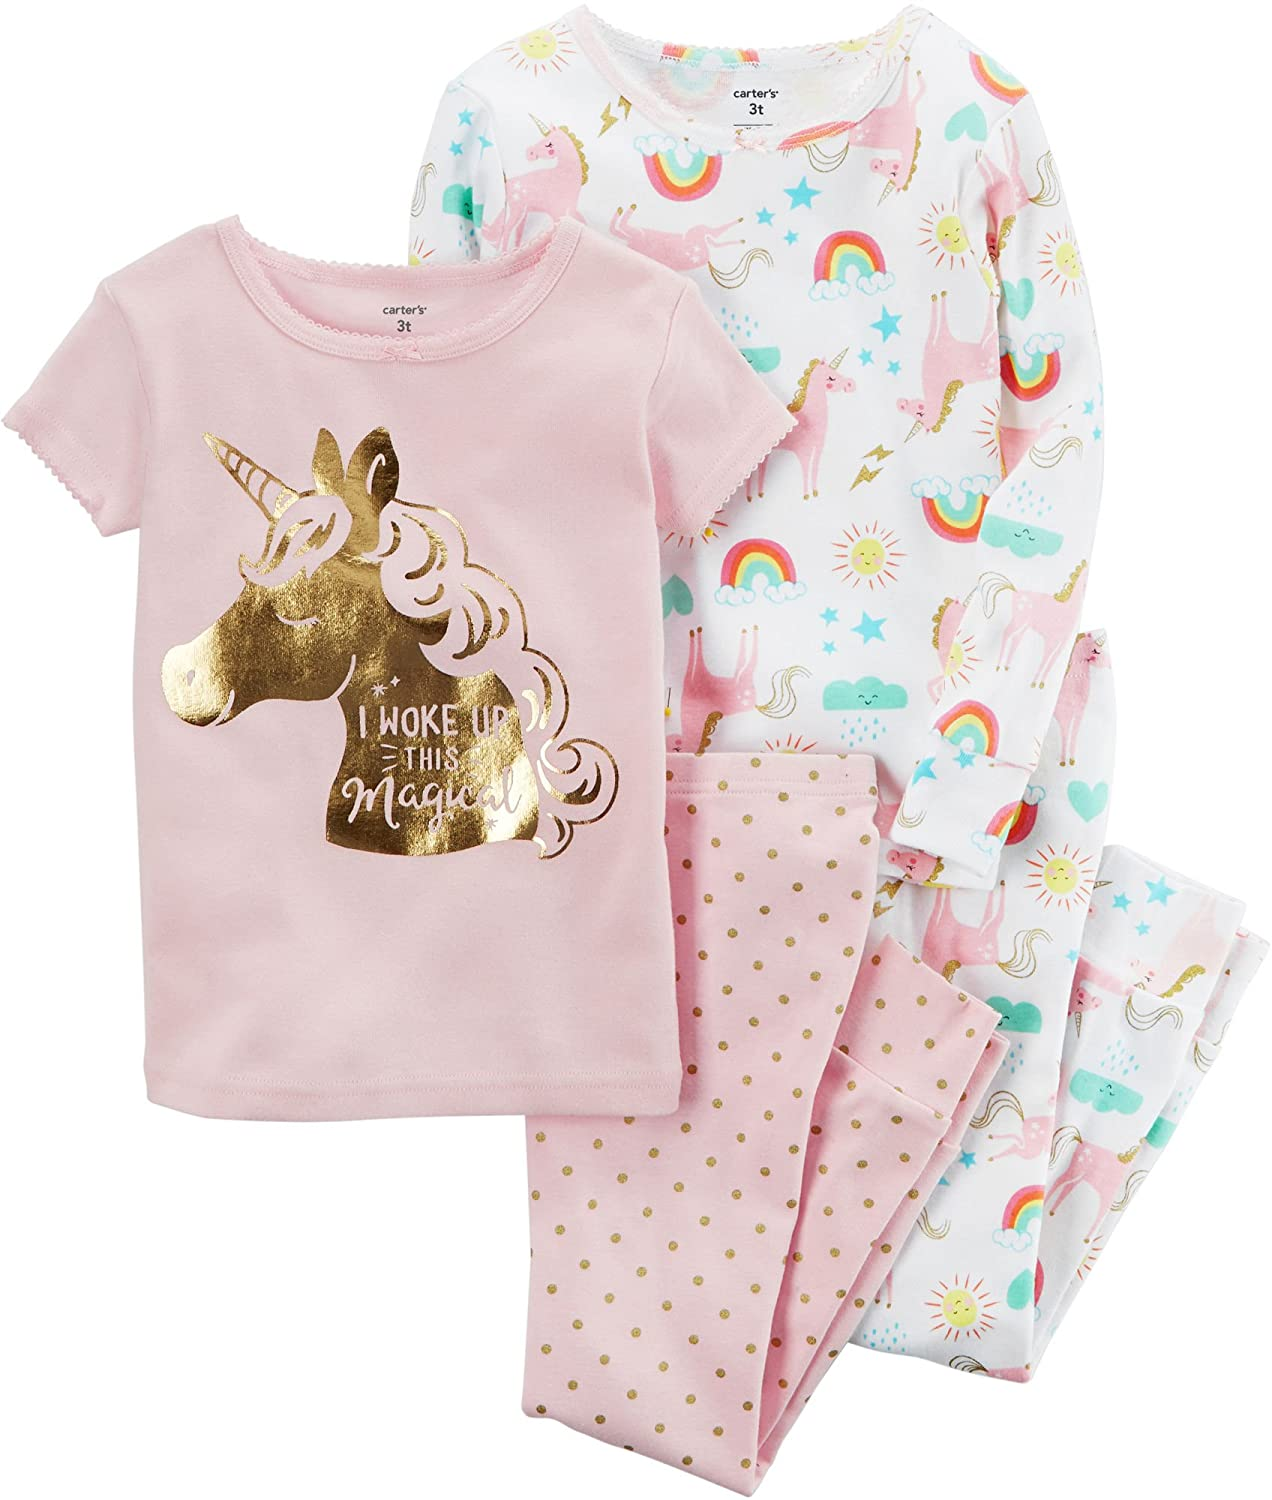 Carter's Baby Girls' 4 Pc Cotton 371g077 Carters